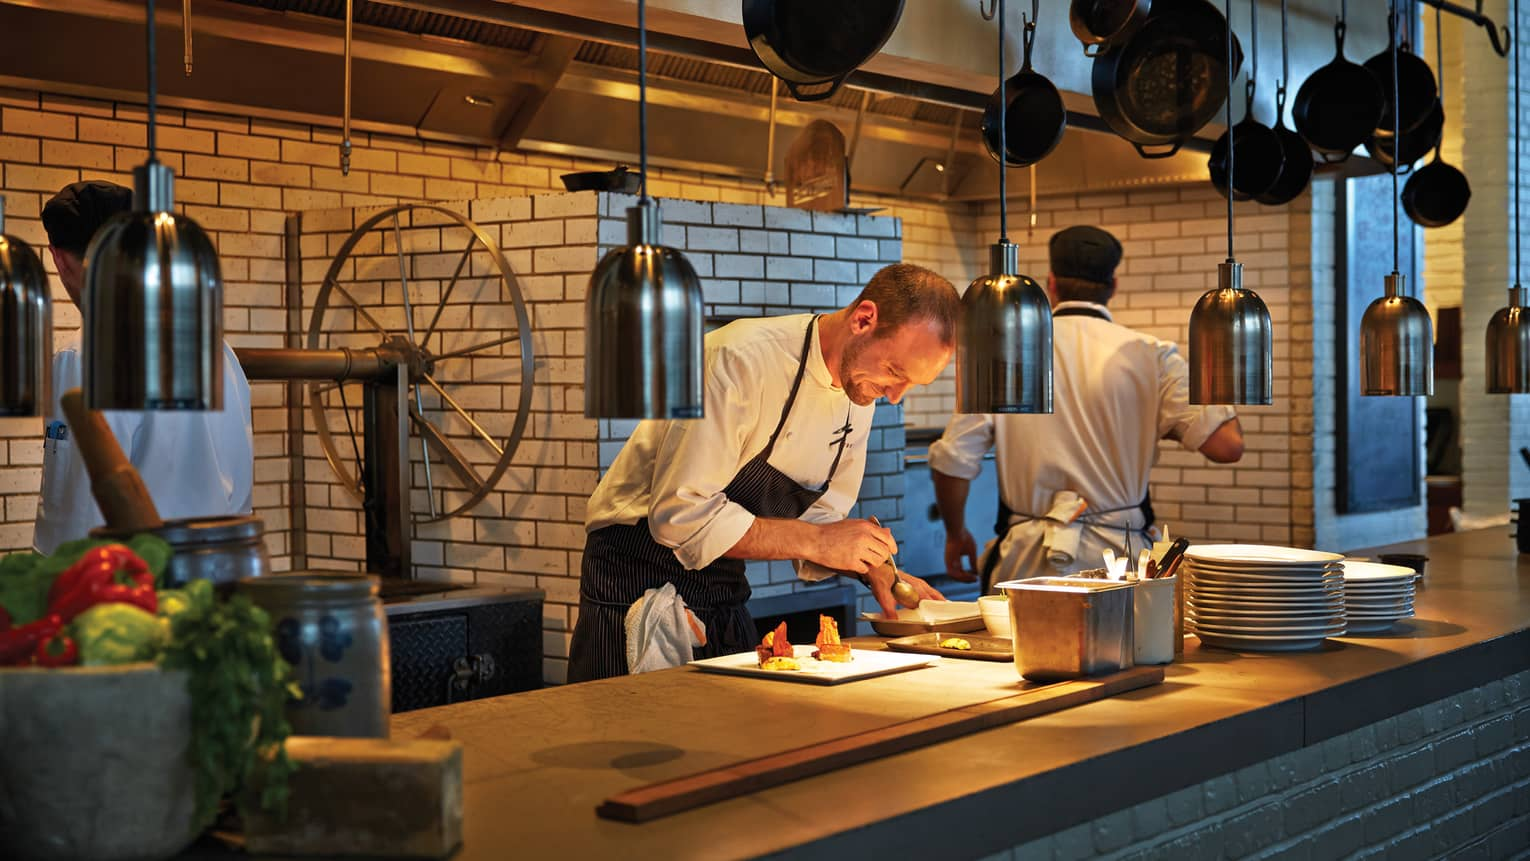 Chef garnishes dishes on brick restaurant line with hanging lamps